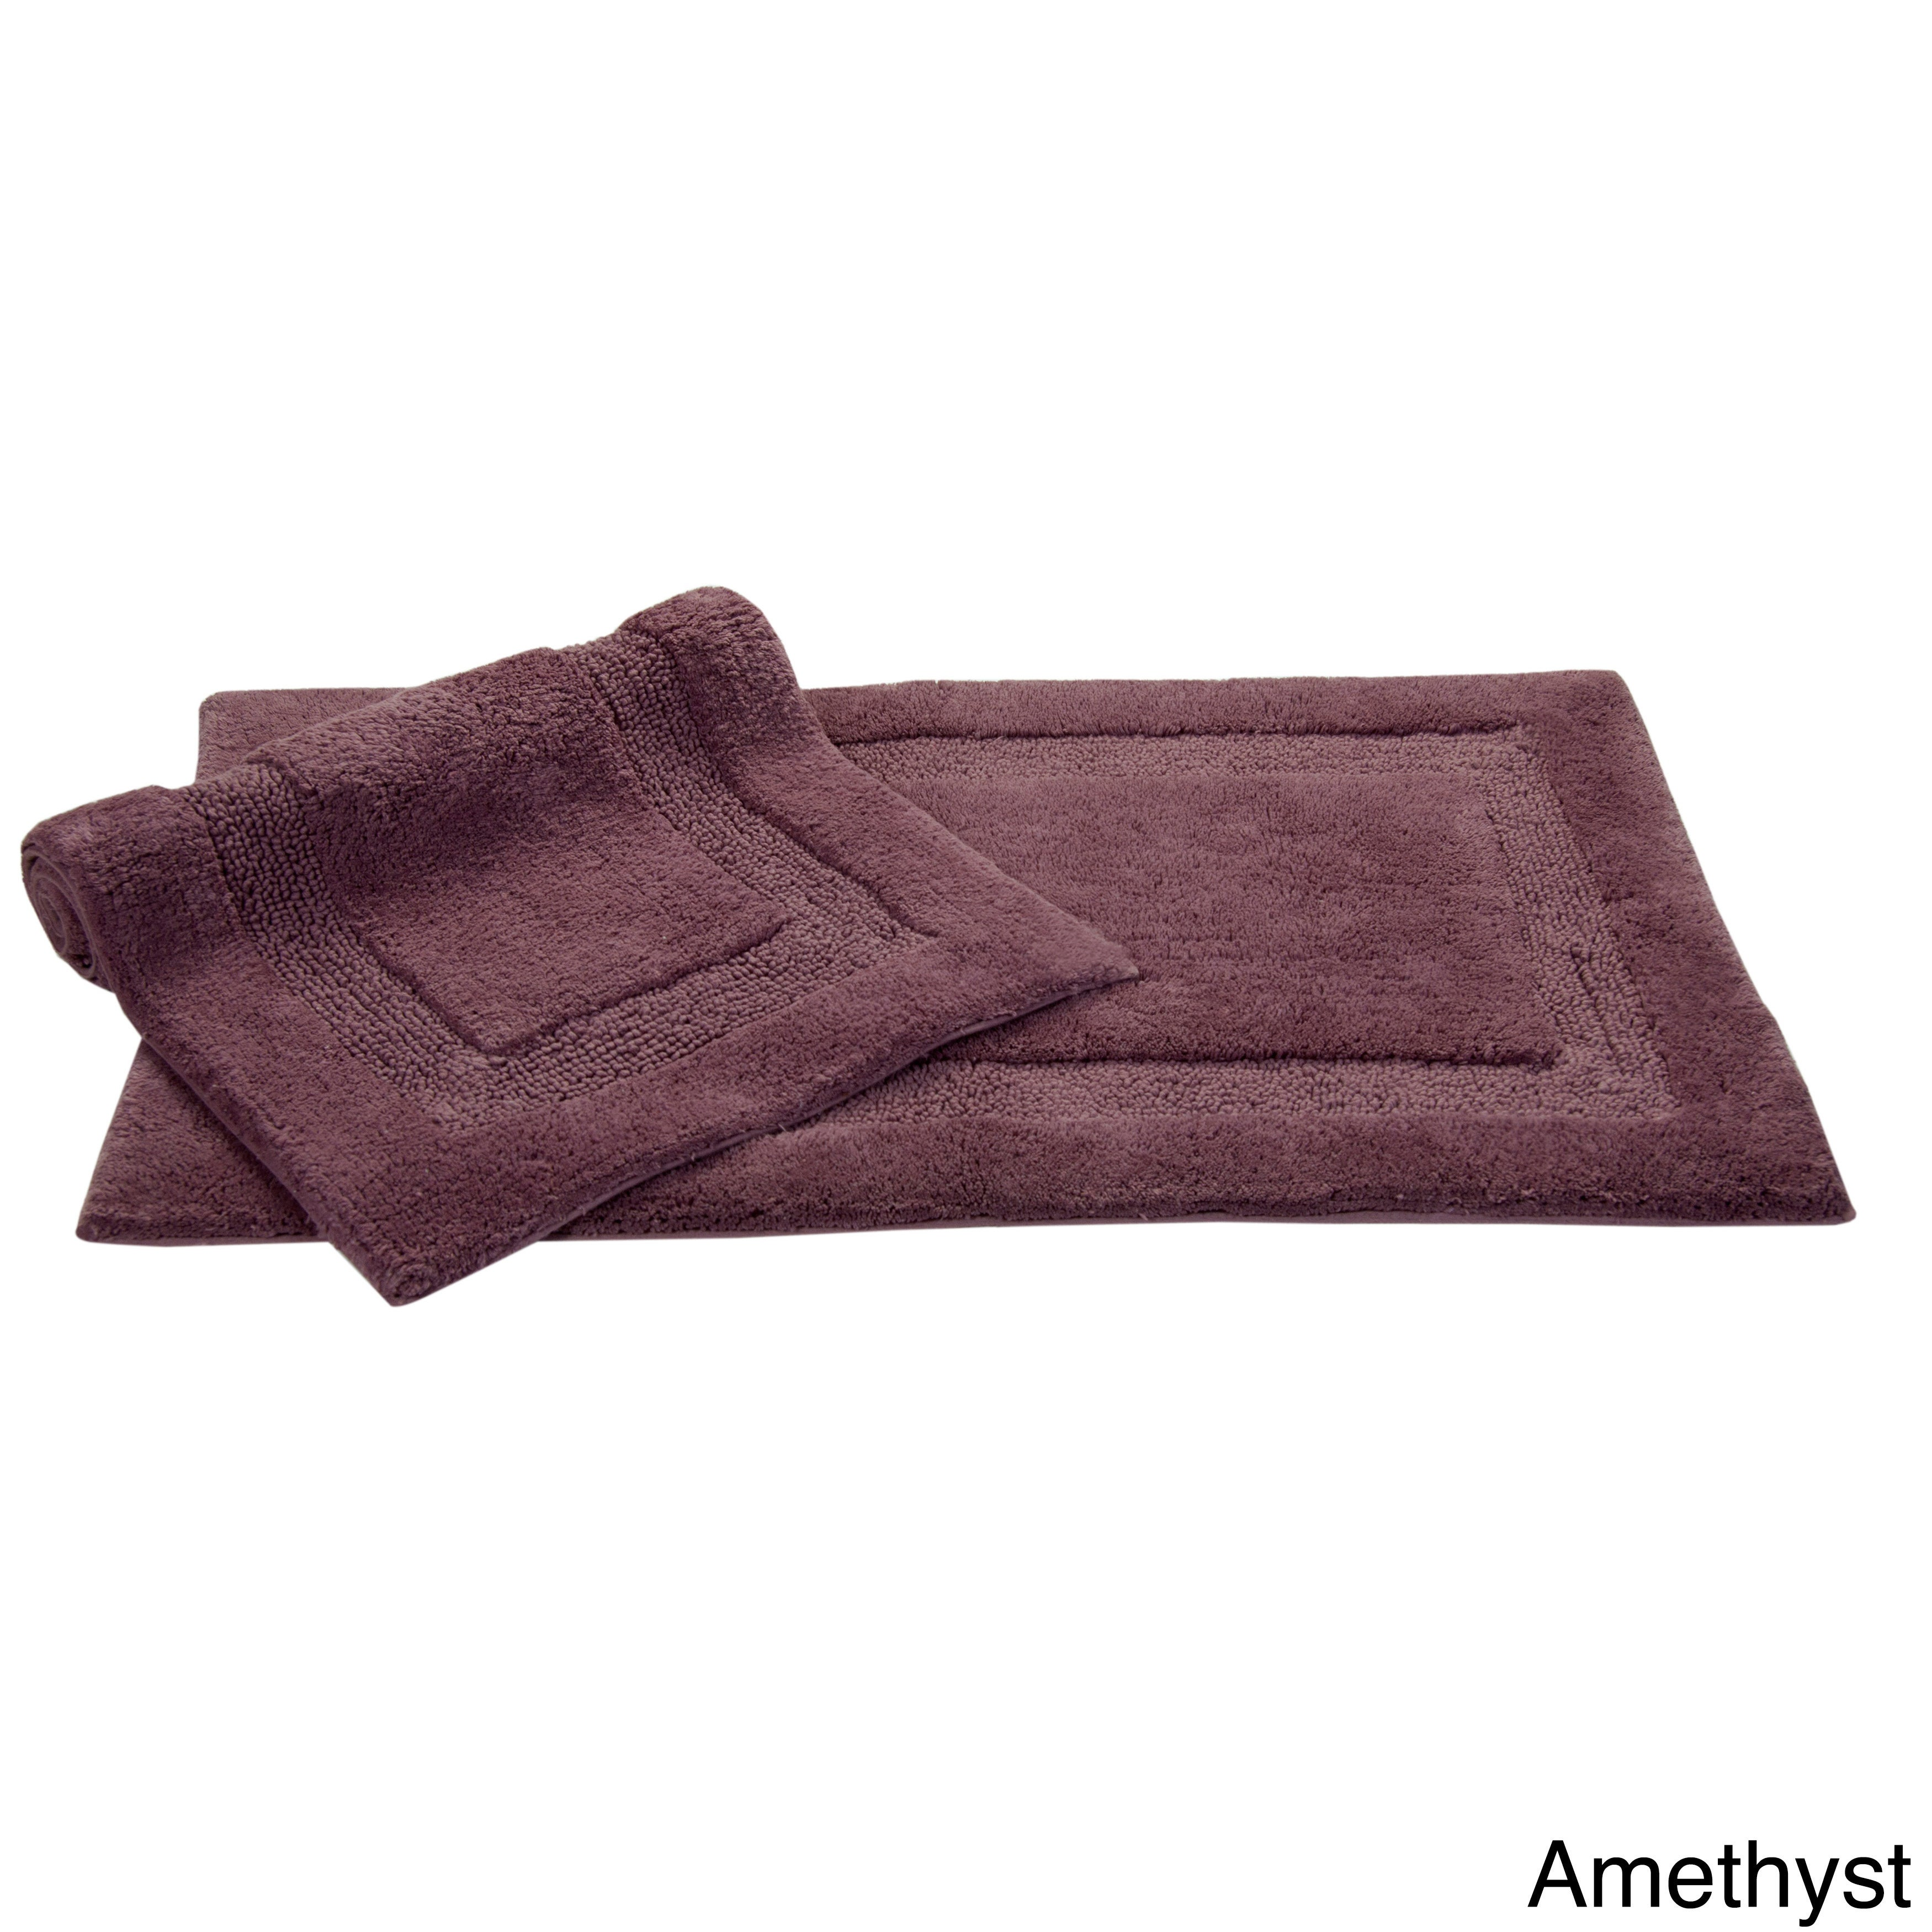 Nuevo Collection Cotton Non Skid Latex Backing 2 Piece Bath Rug Set Includes Bonus Step Out Mat Free Shipping Today Com 5677350